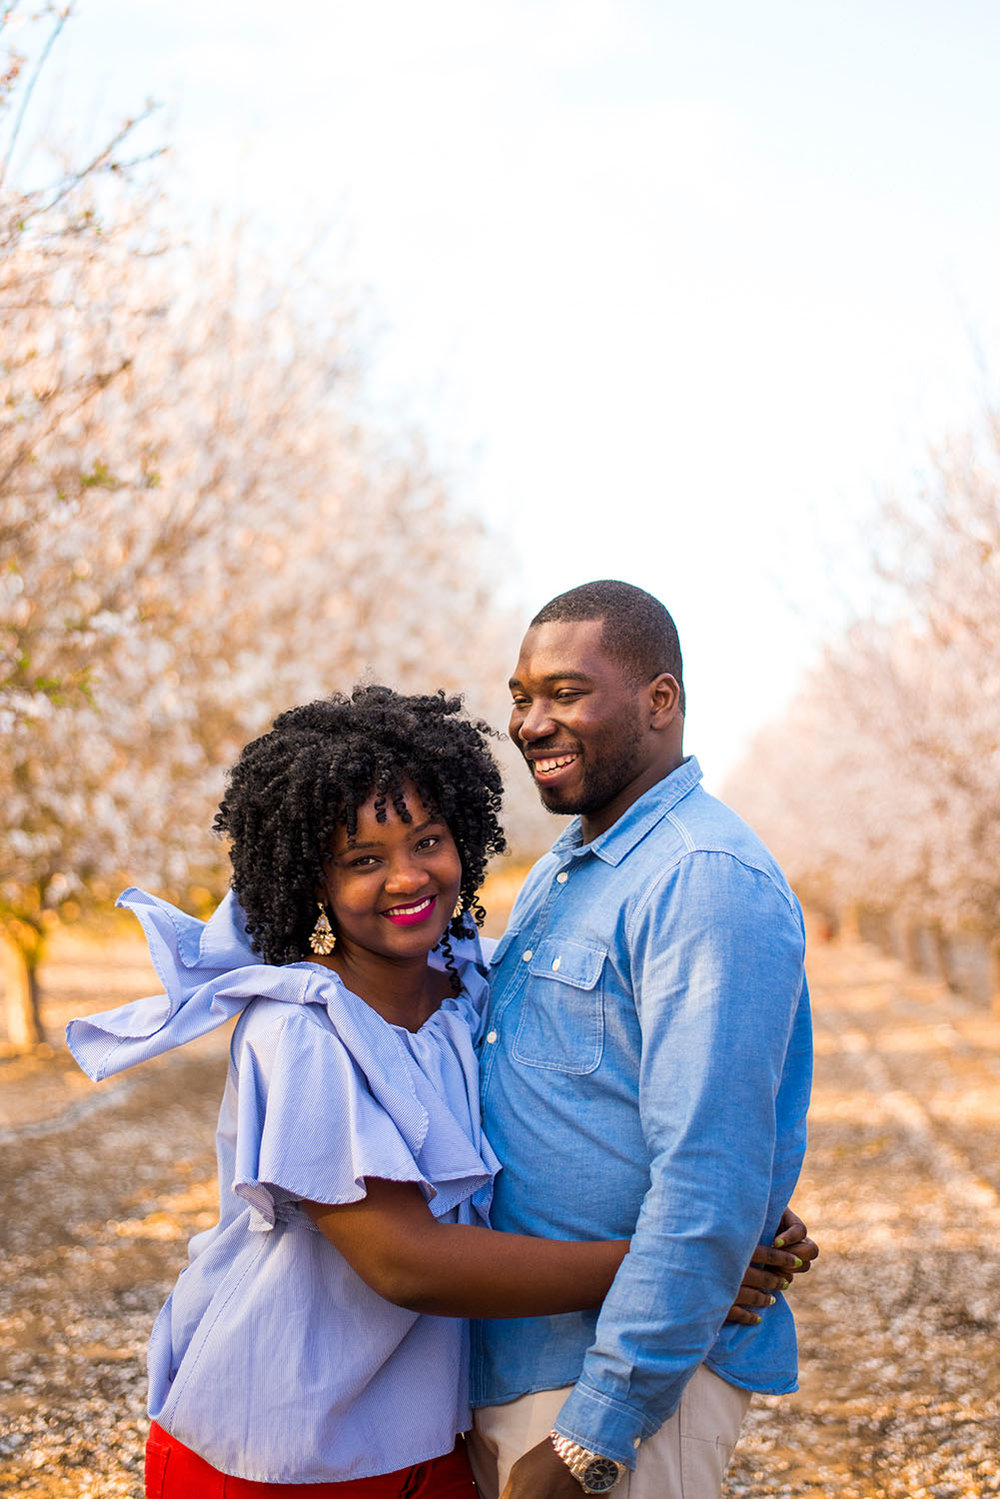 Family portrait photographed in a blossoming almond grove in Central Valley California by photographer Lillian Short.